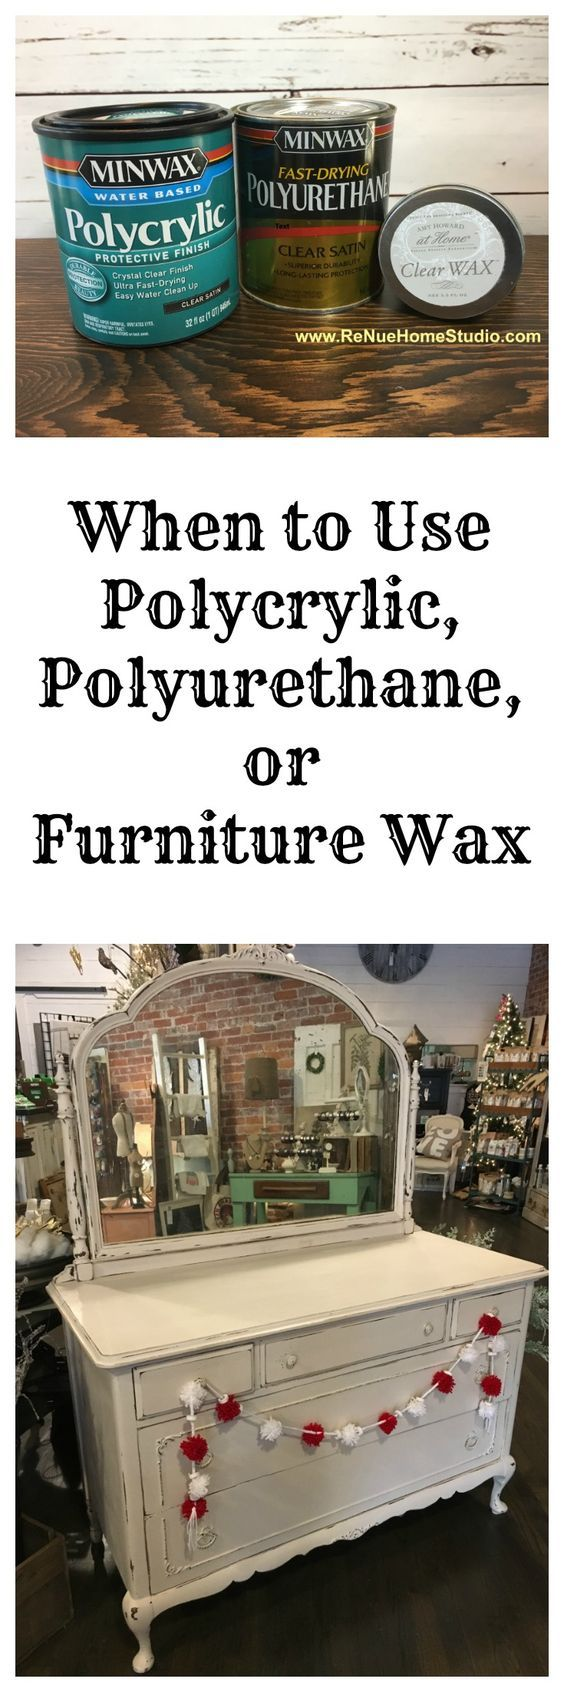 Minwax super fast drying polyurethane - When Is The Best Time To Use Polycrylic Polyurethane Or Furniture Wax On Your Diy